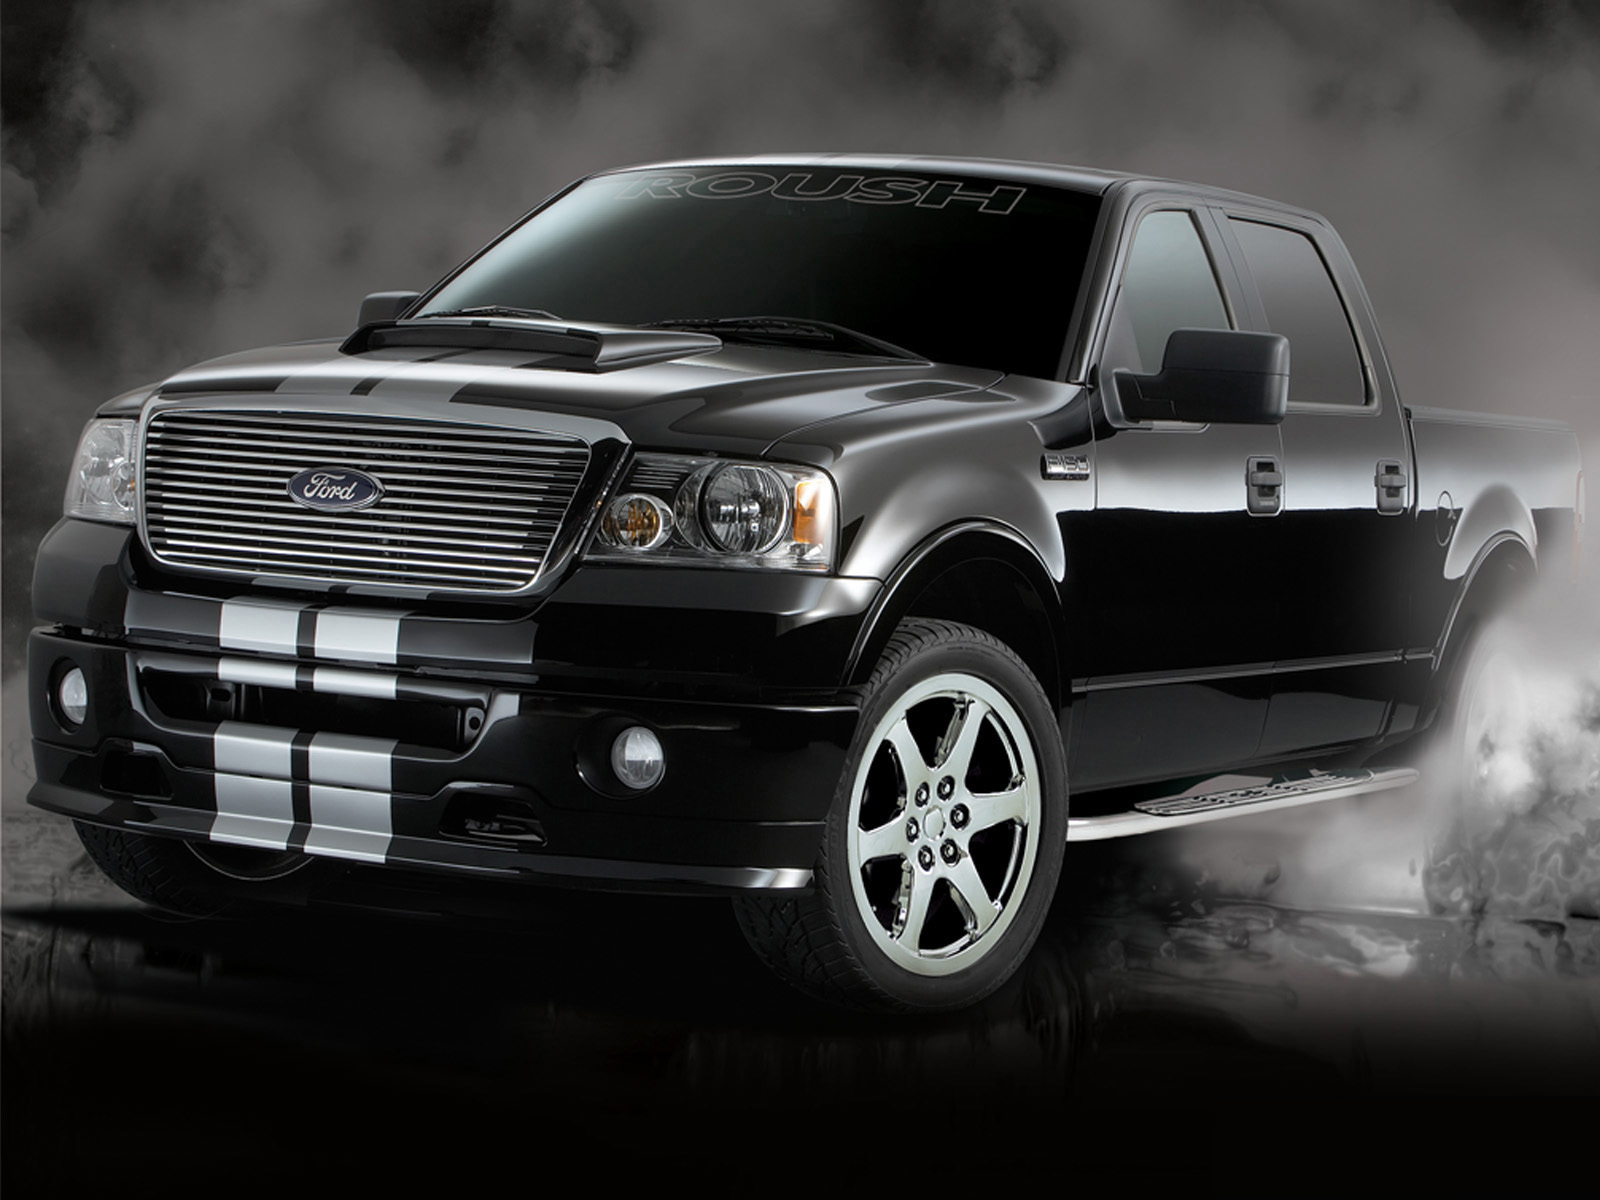 Roush Ford F-150 Nitemare photo 47224